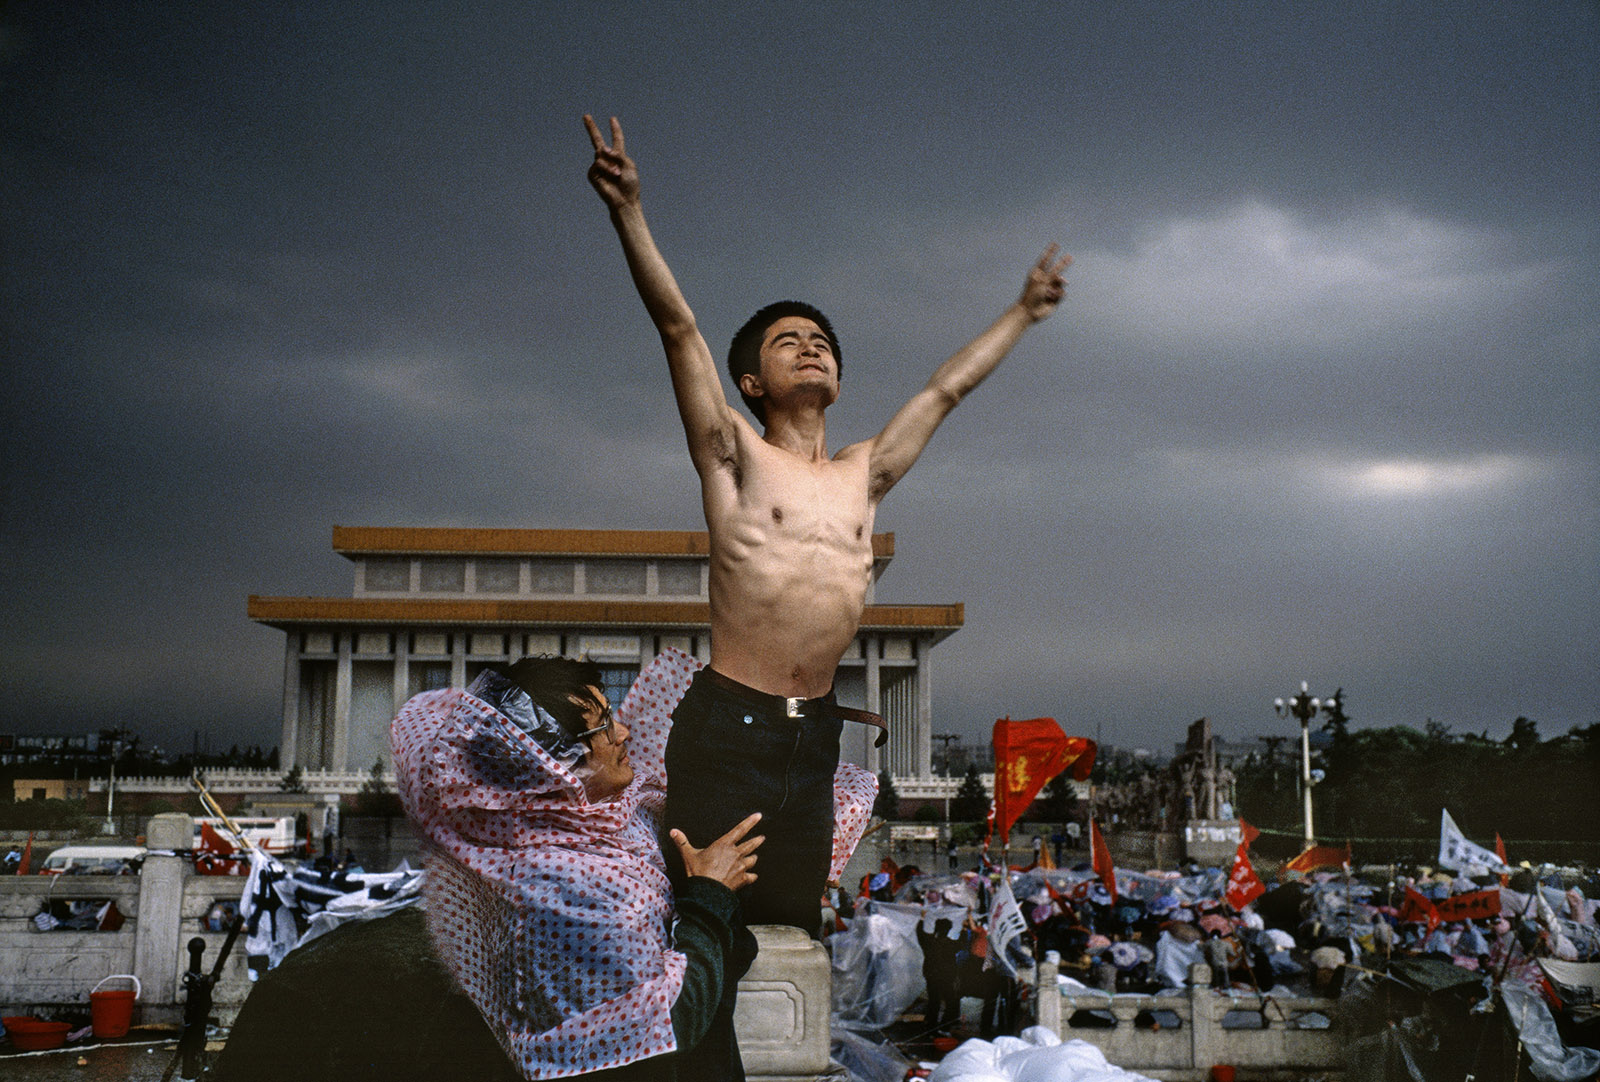 Pro-democracy protesters at Tiananmen Square, Beijing, China, 1989